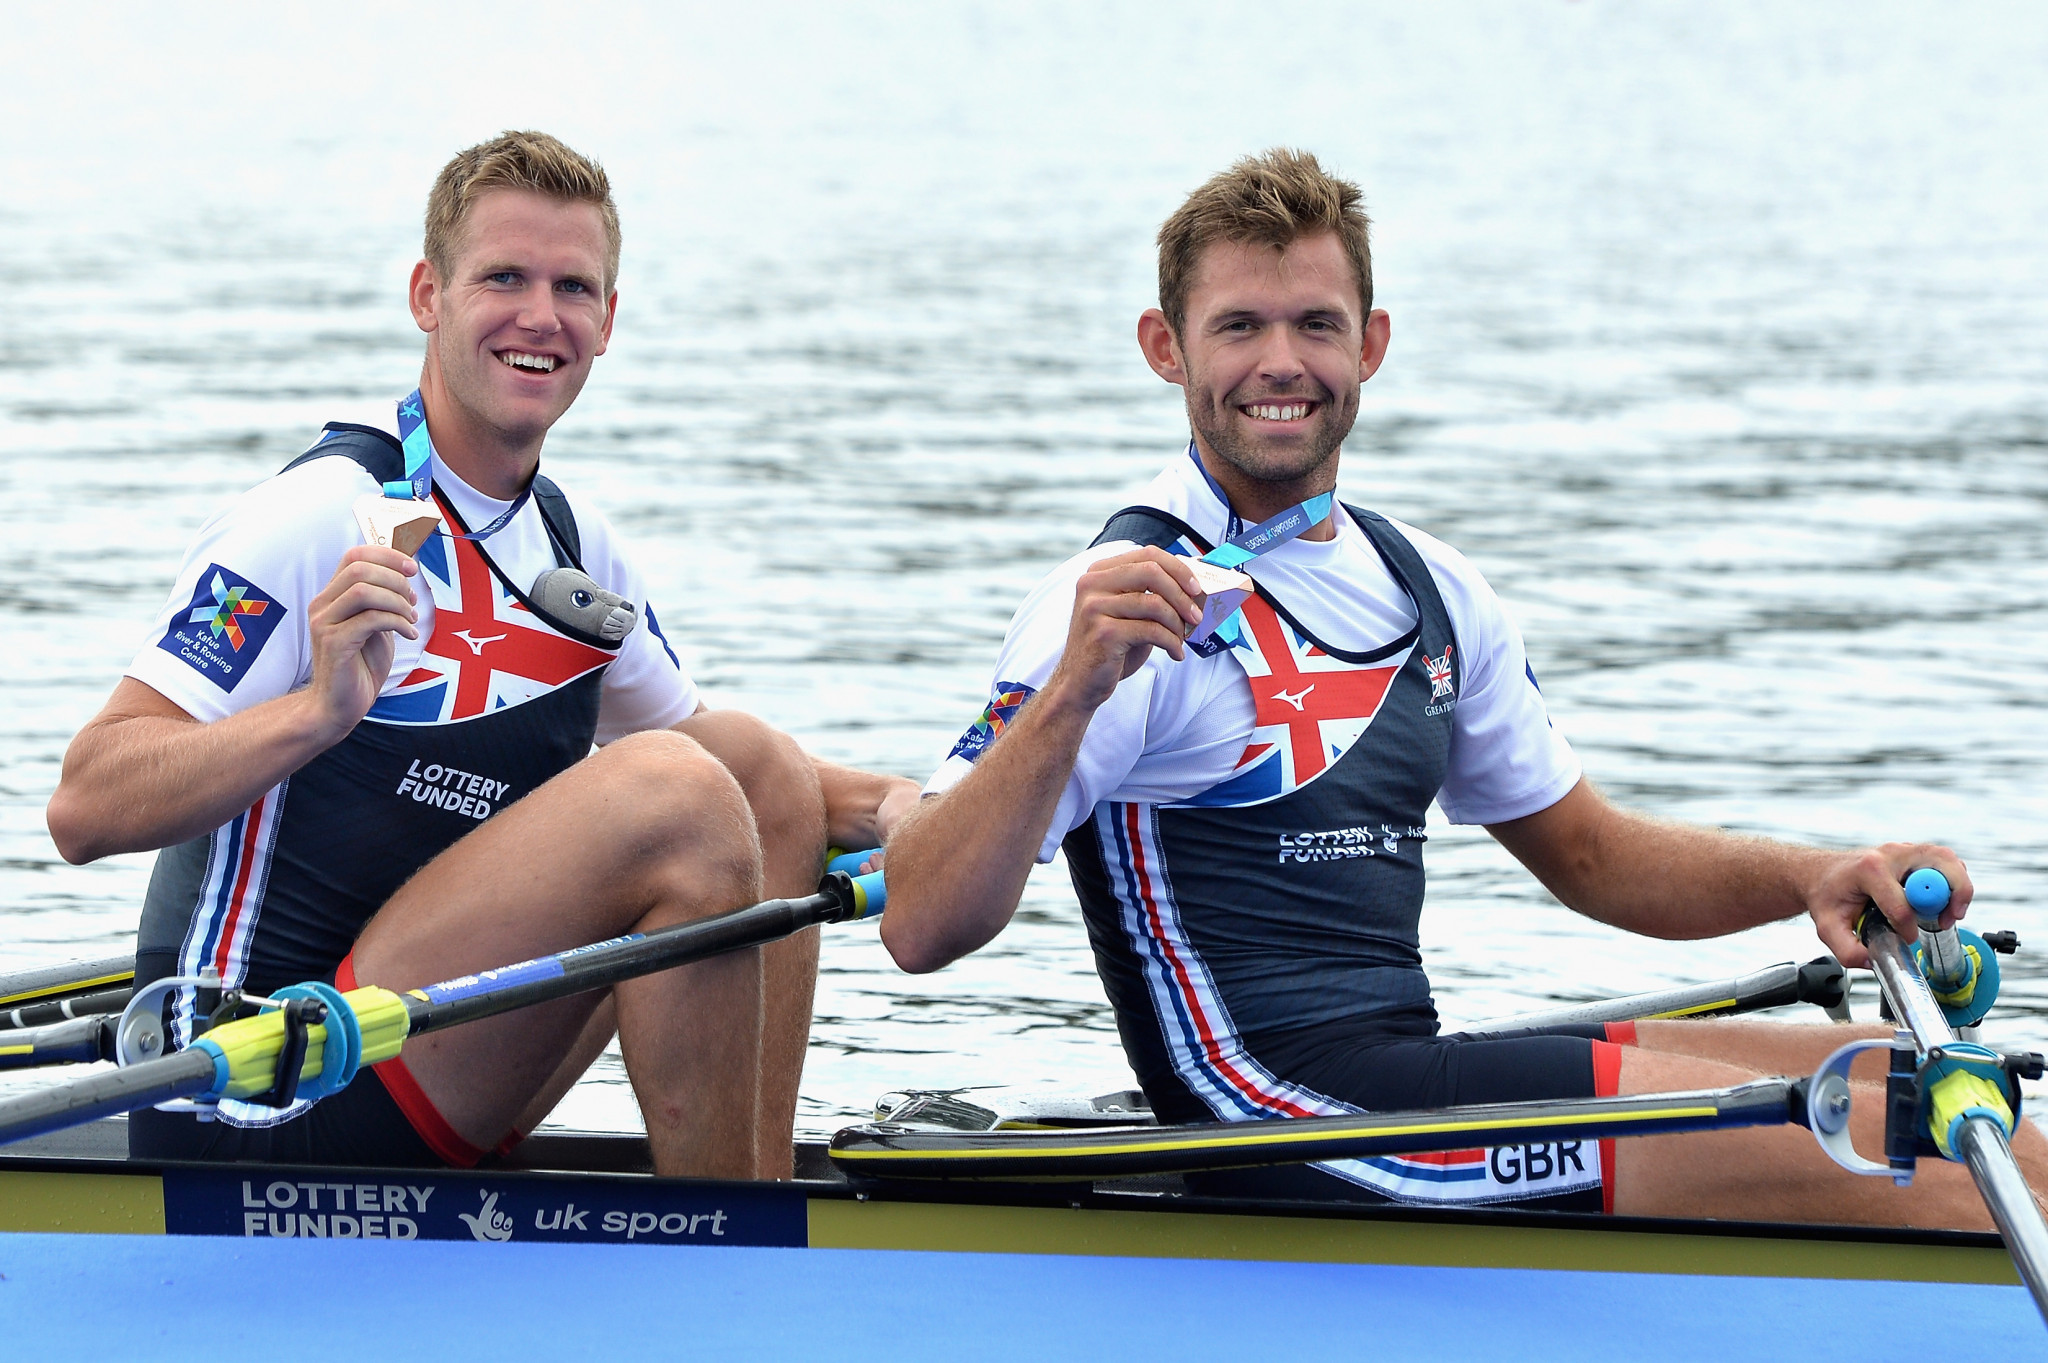 British Rowing is responsible for the training and selection of athletes to represent Great Britain at international championships ©Getty Images